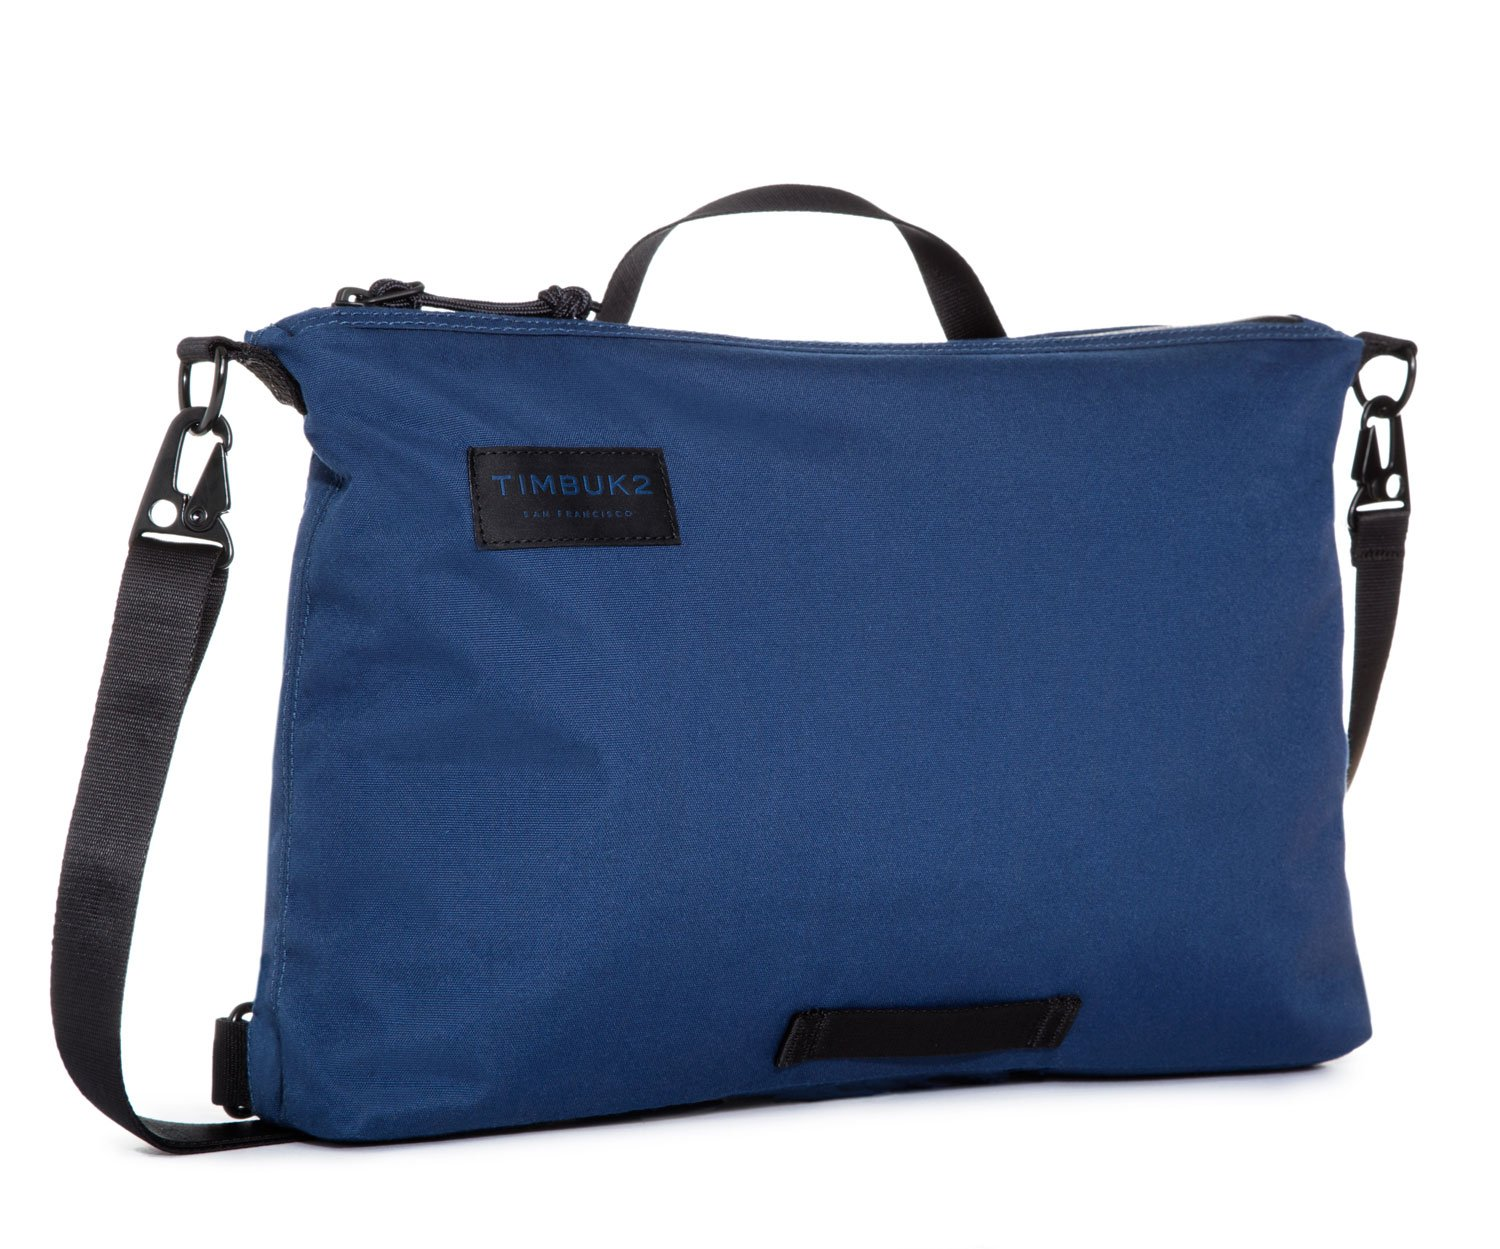 Timbuk2 Heist Briefcase Soot One Size 568